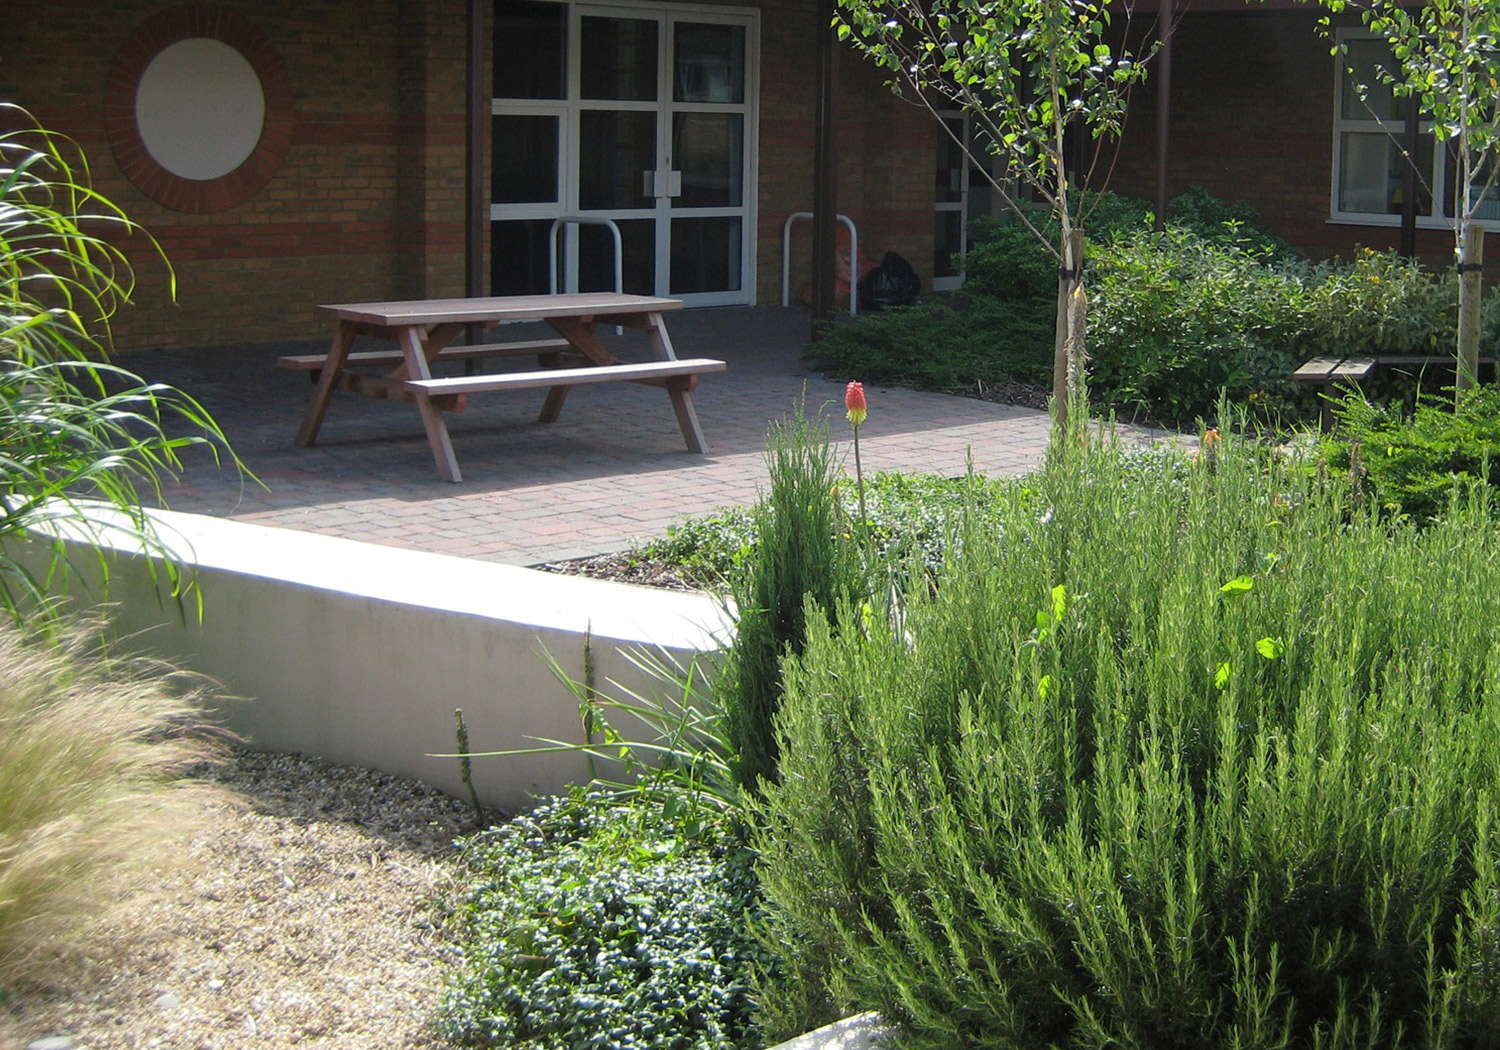 Projects-Education-ElmstowPrimary-Garden-1500x1050